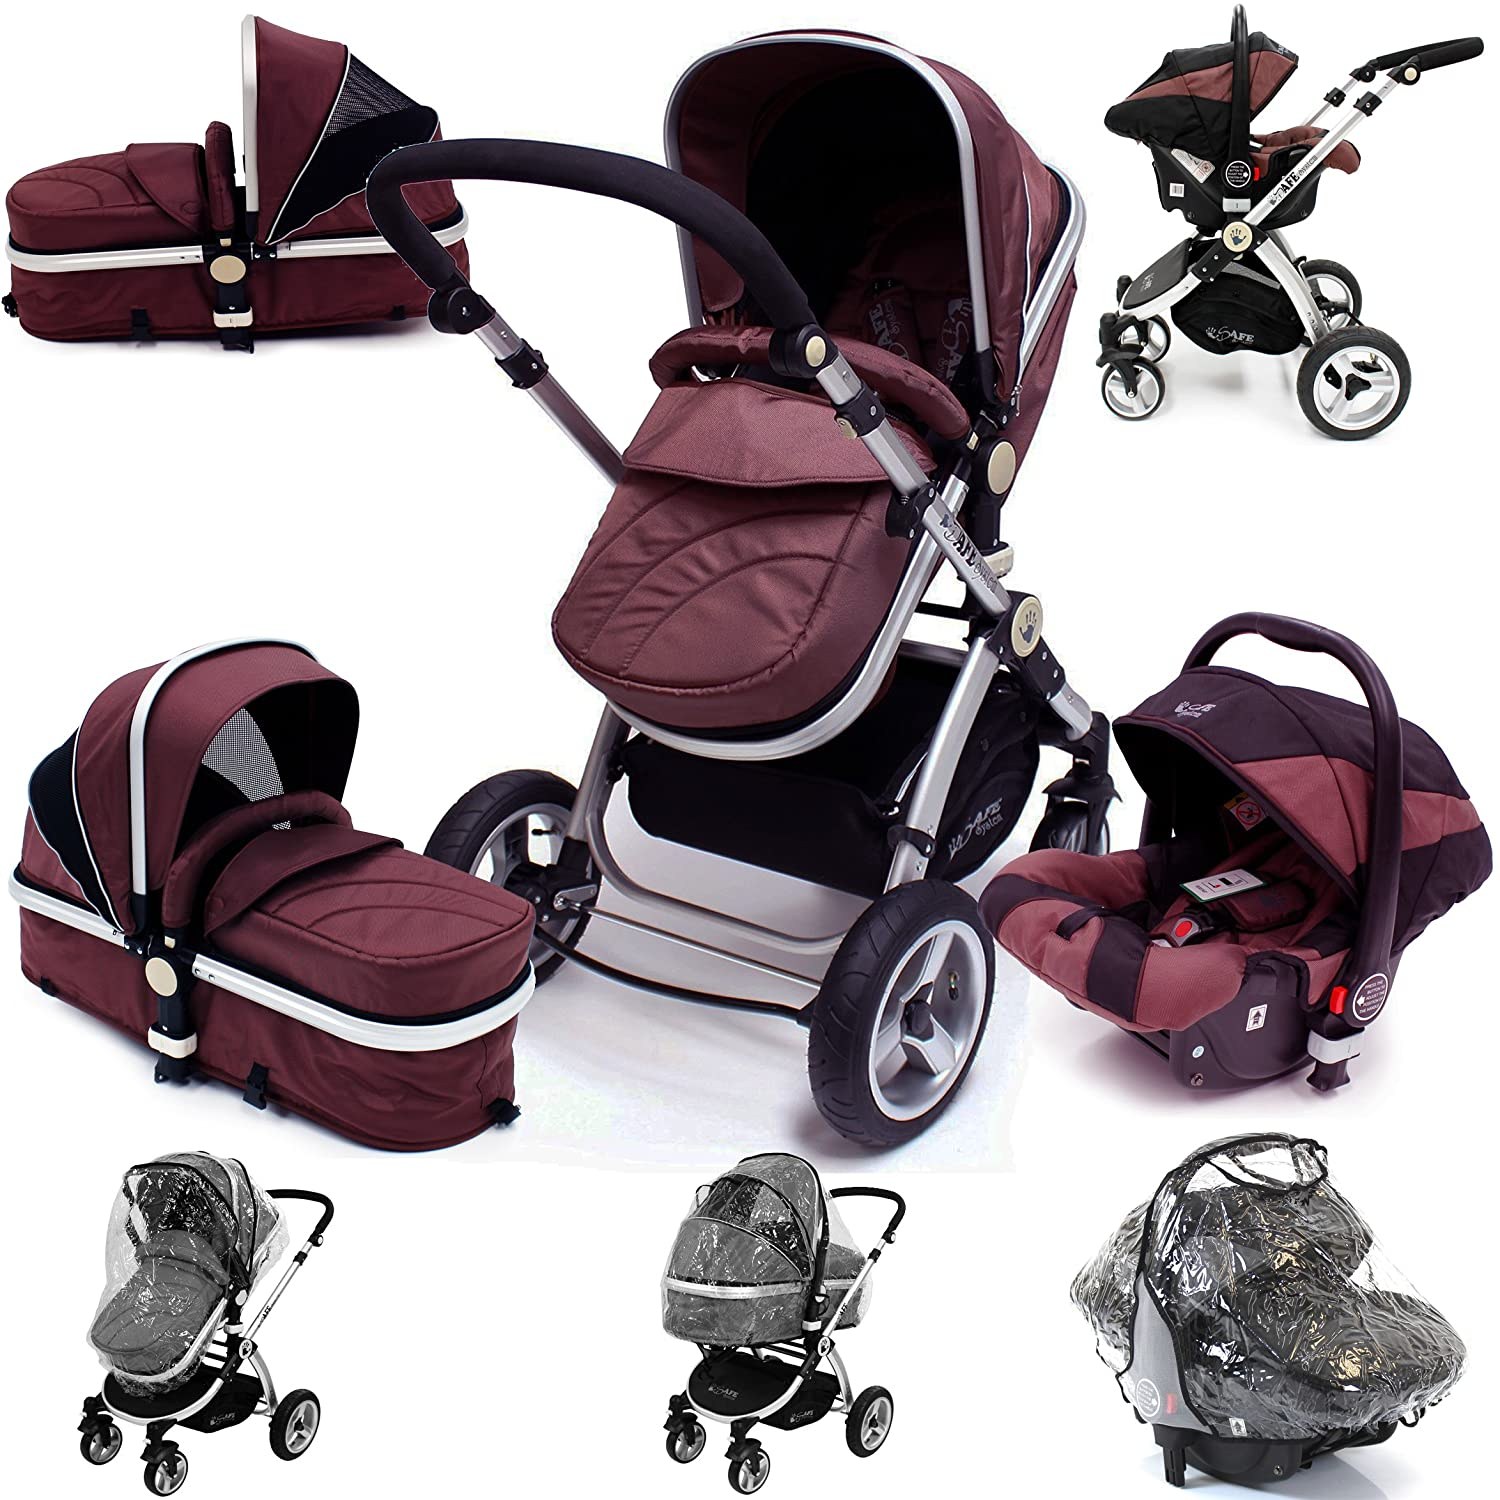 i-Safe System - Hot Chocolate Trio Travel System Pram & Stroller 3 in 1 Complete With Car Seat Shopping Basket